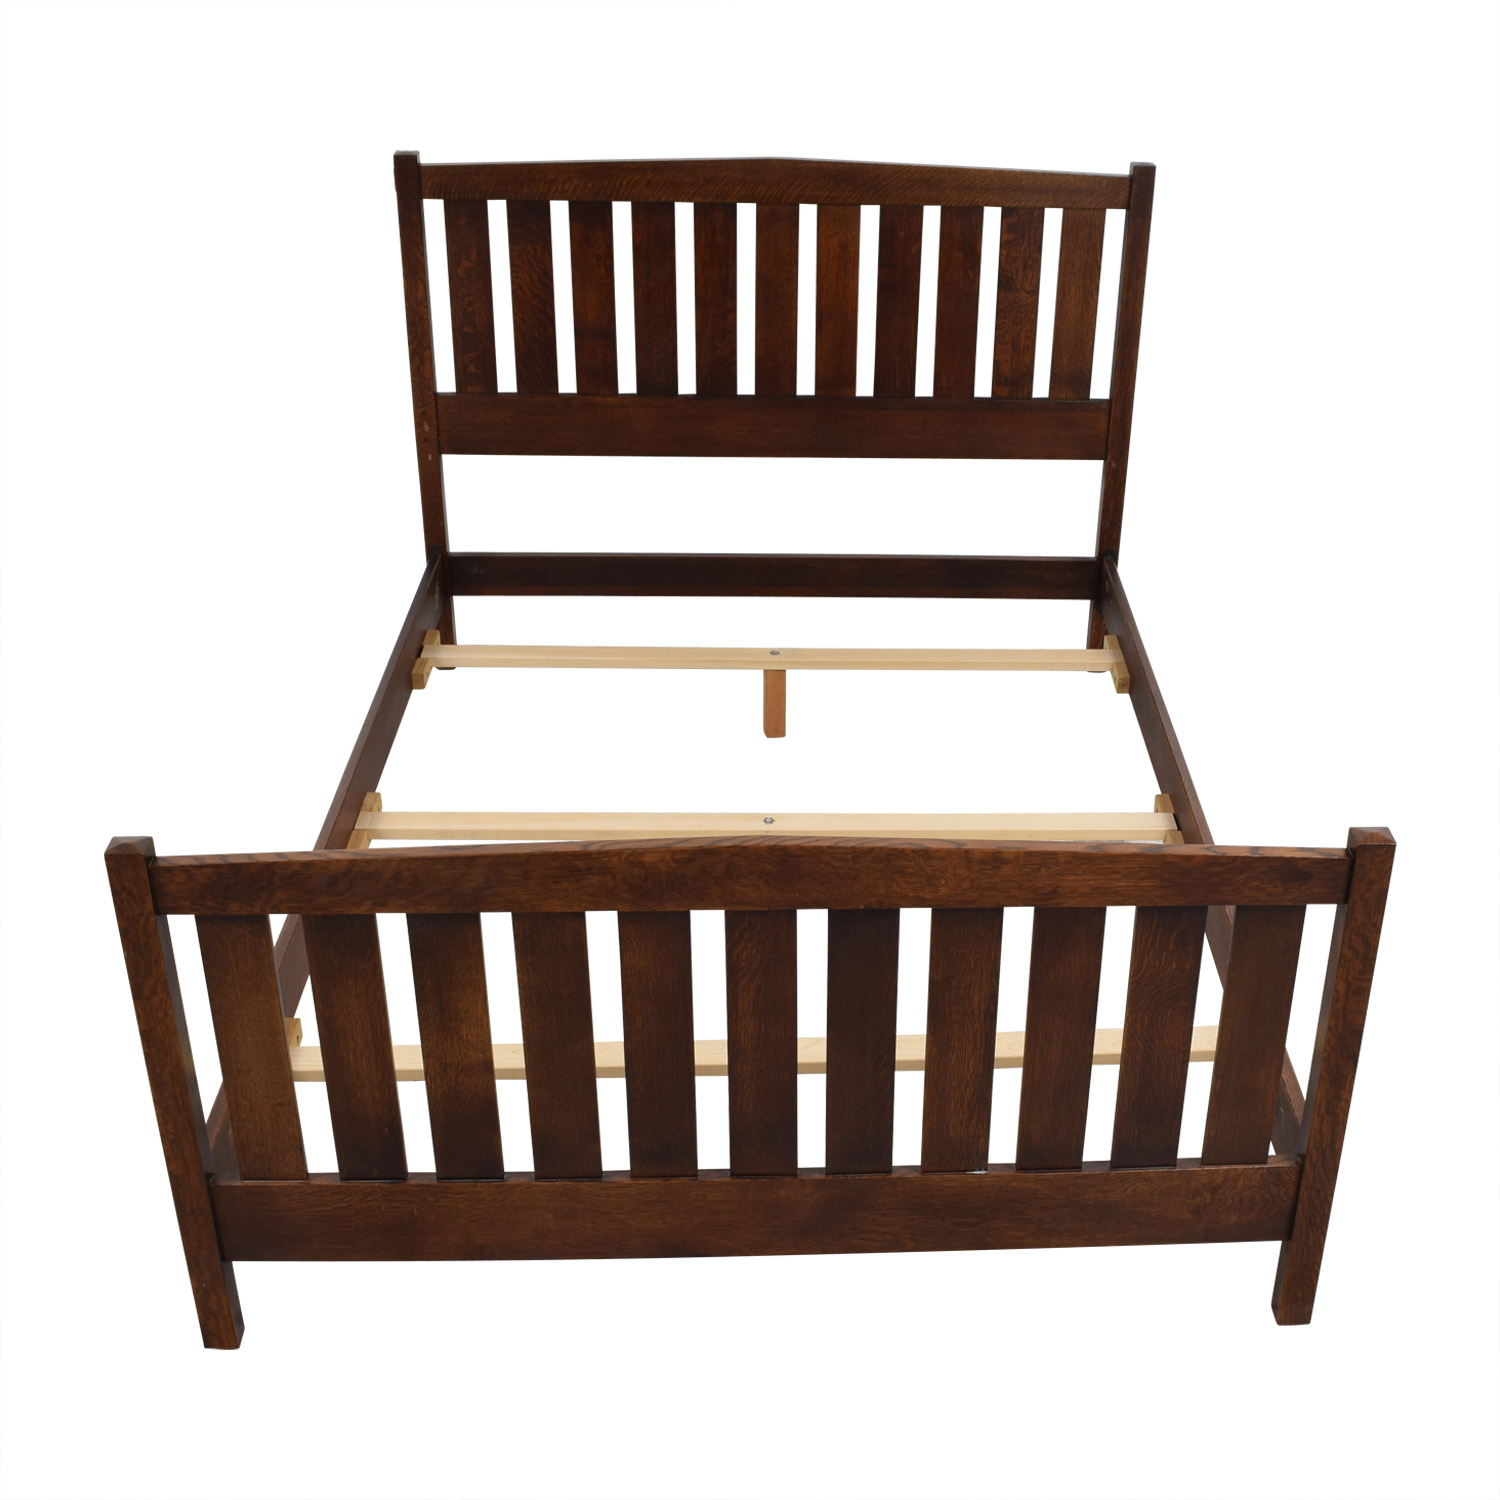 Stickley Stickley Mission Queen Bed Frame second hand